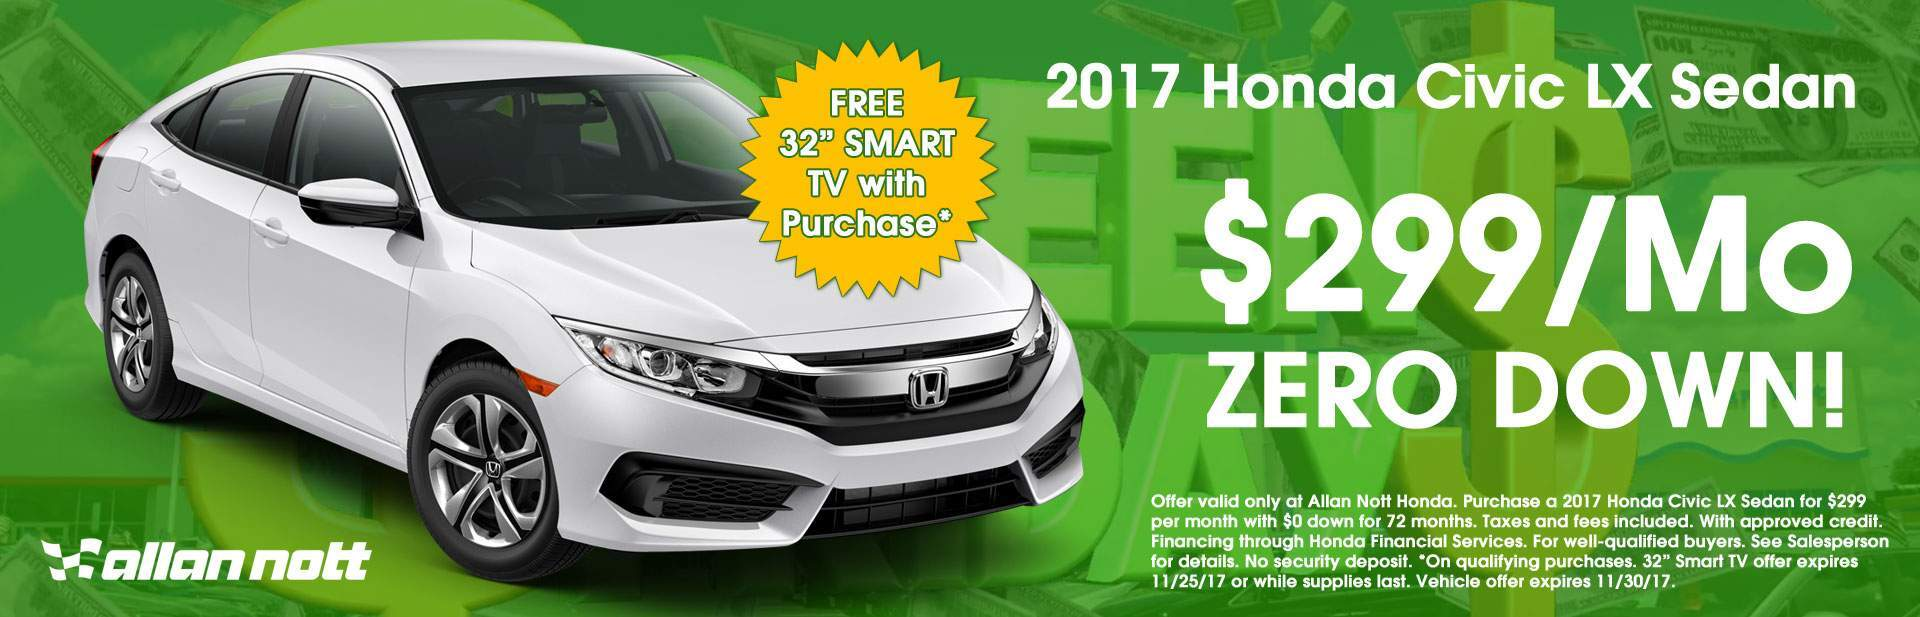 Keep your green in your pocket with this 2017 Honda Civic LX Special!